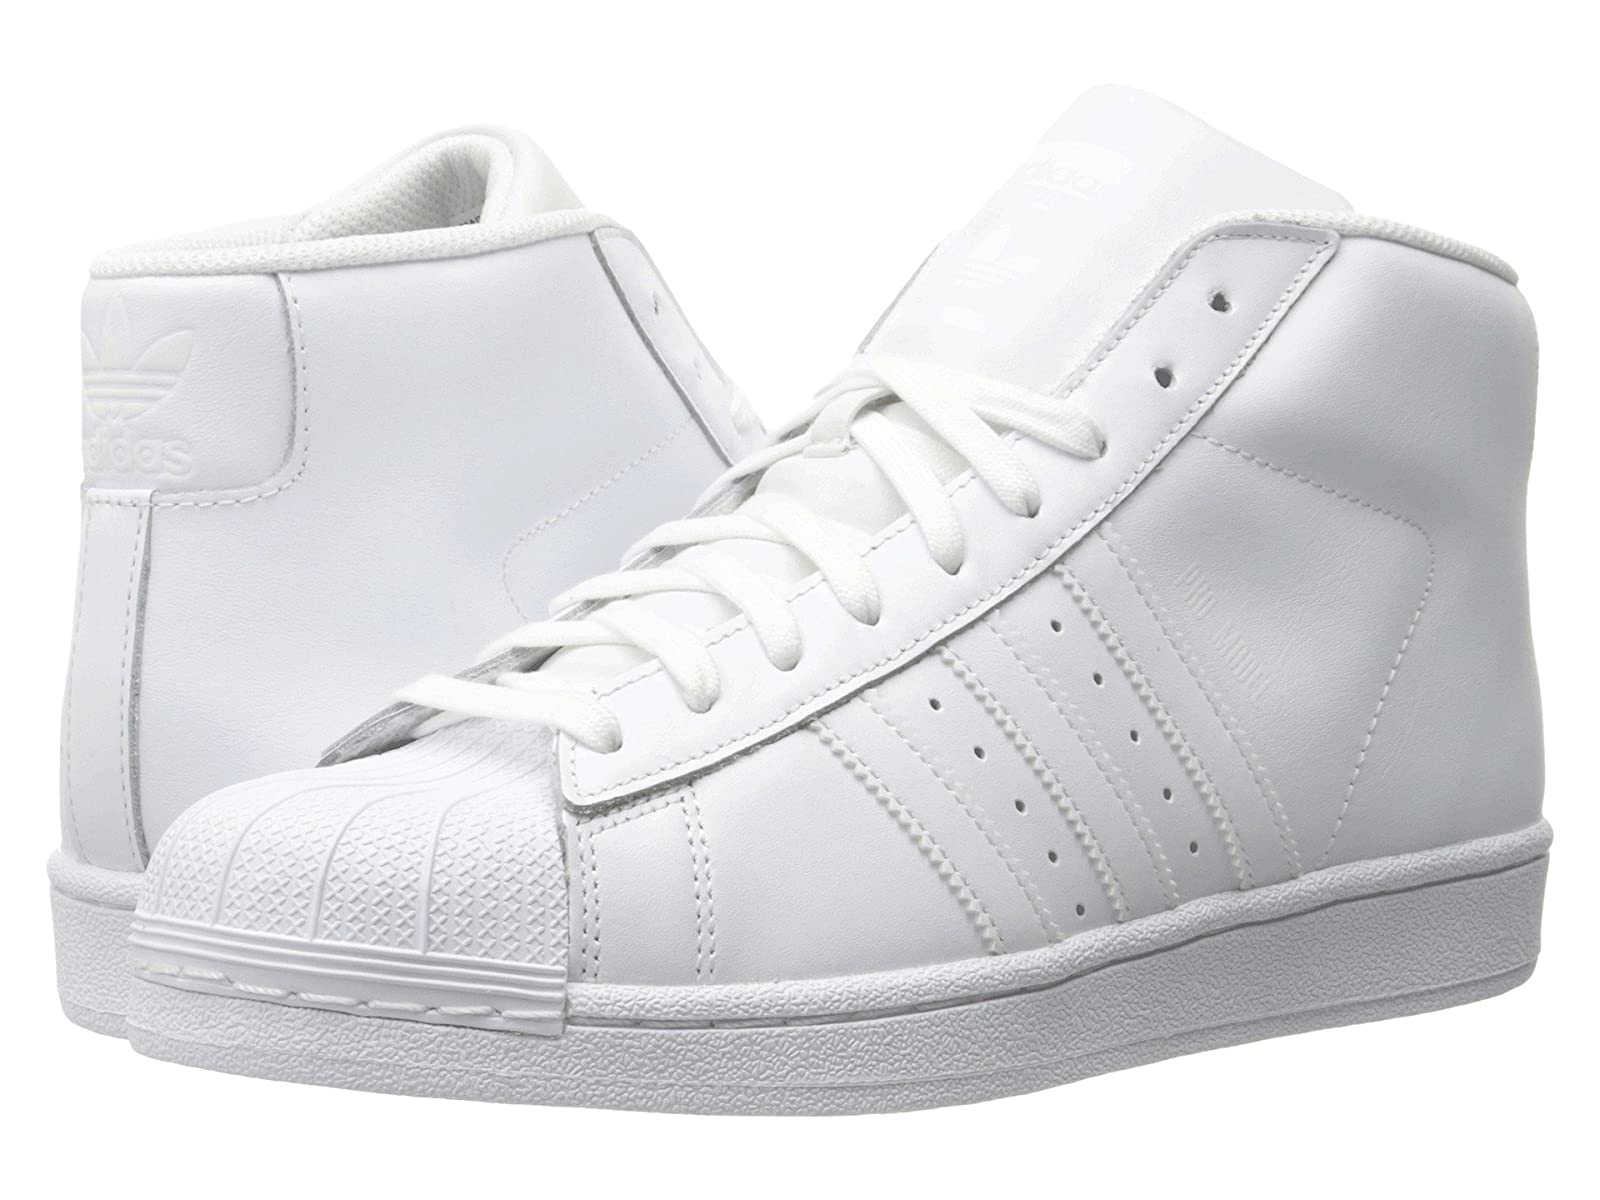 adidas Originals Pro ModelStylish and characteristic shoes